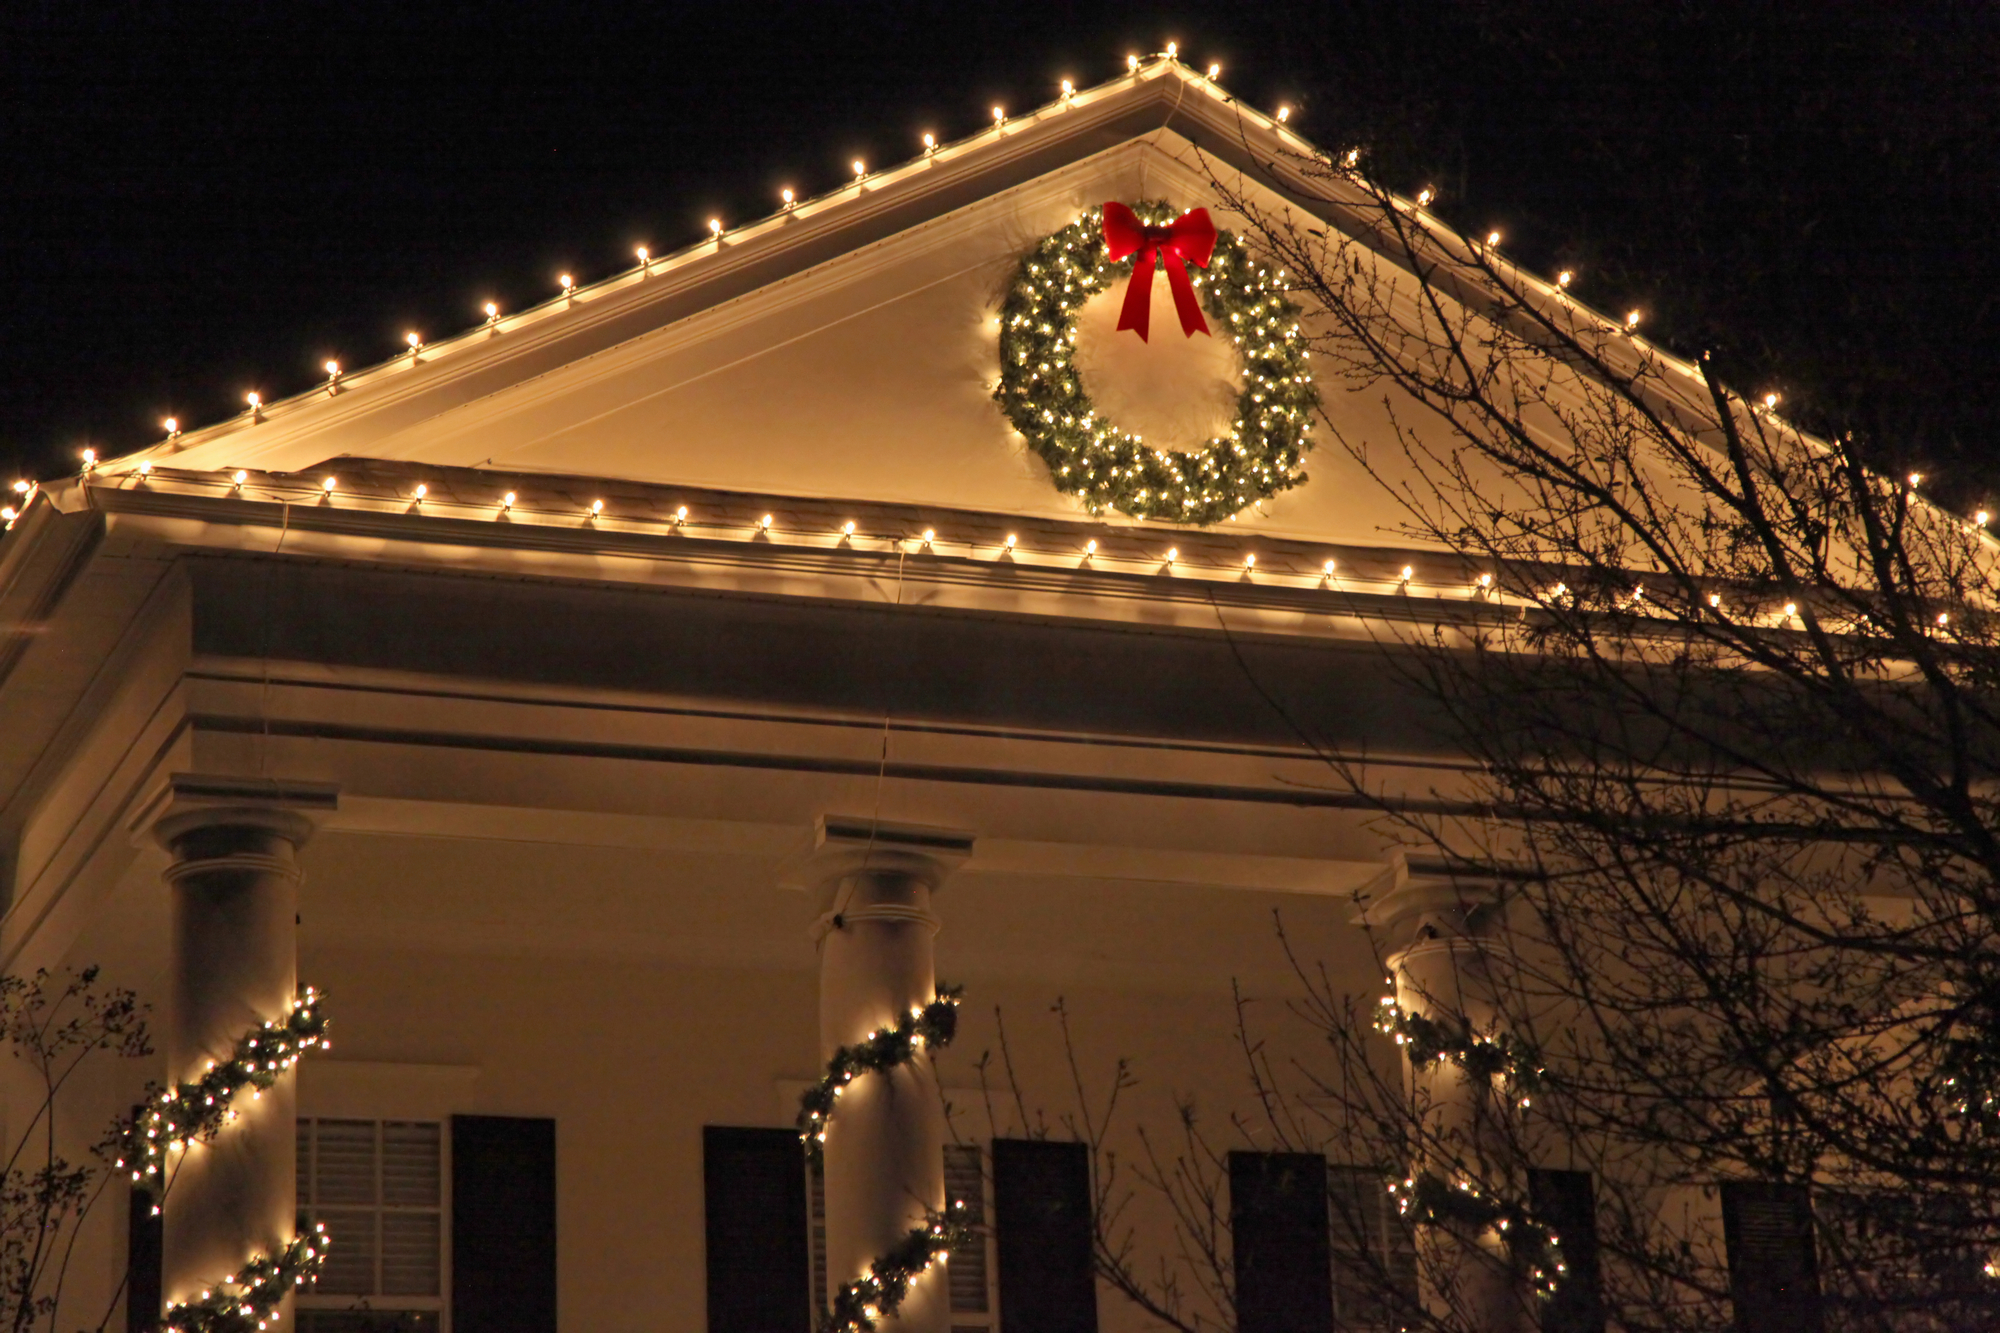 3 Tips For Hanging Holiday Decorations Without Damaging Your Roof